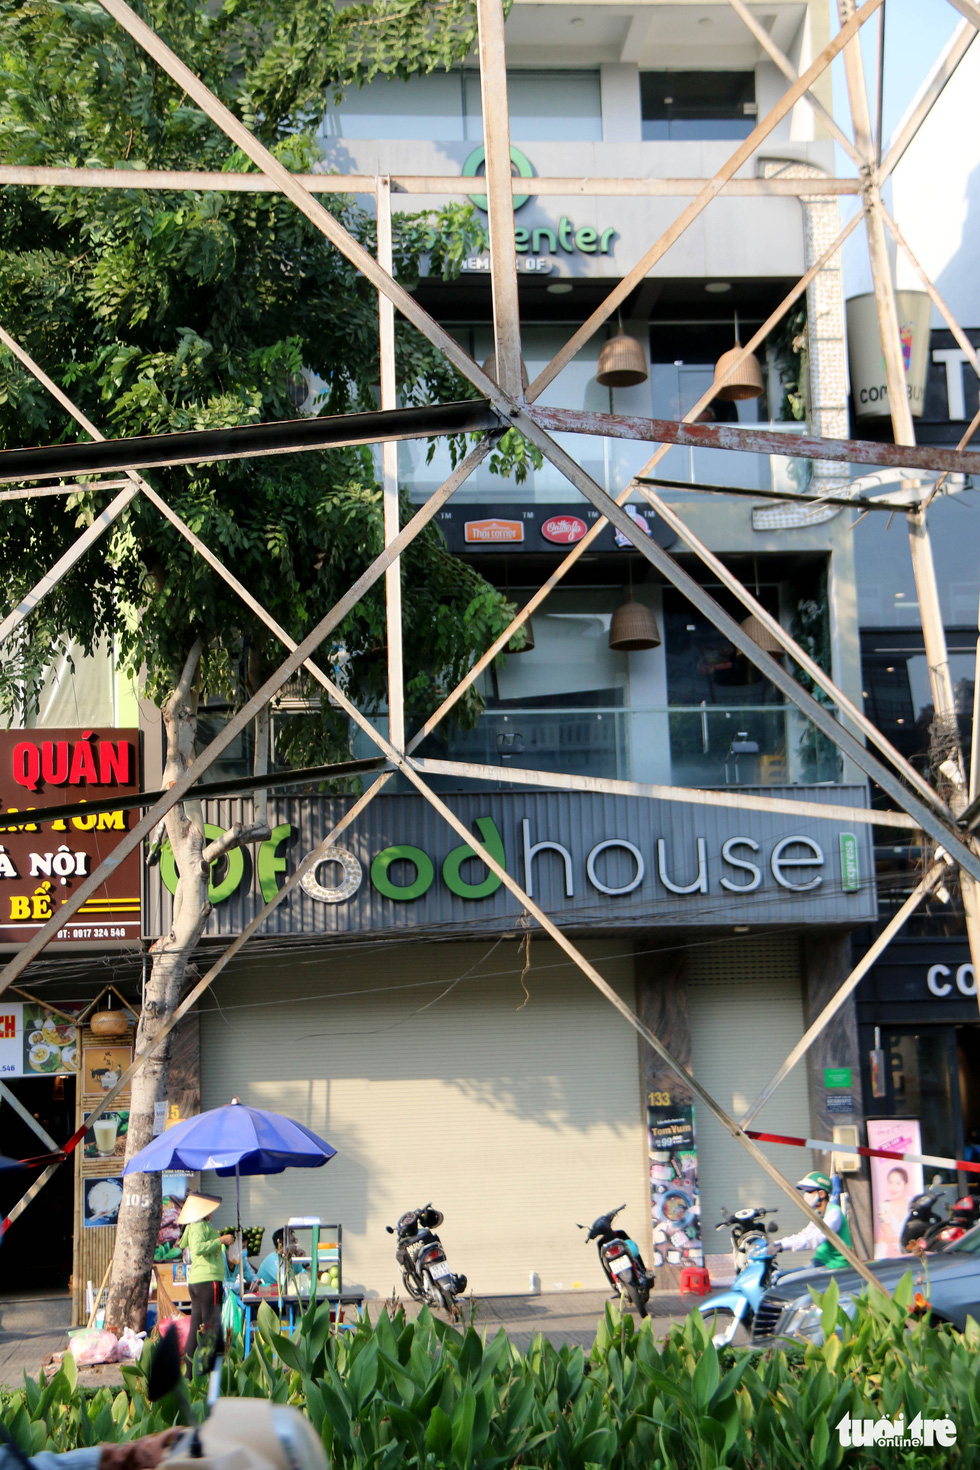 A location of the Food House restaurant franchise is shuttered on Phan Xich Long Street in Phu Nhuan District, Ho Chi Minh City. Photo: Ngoc Hien / Tuoi Tre